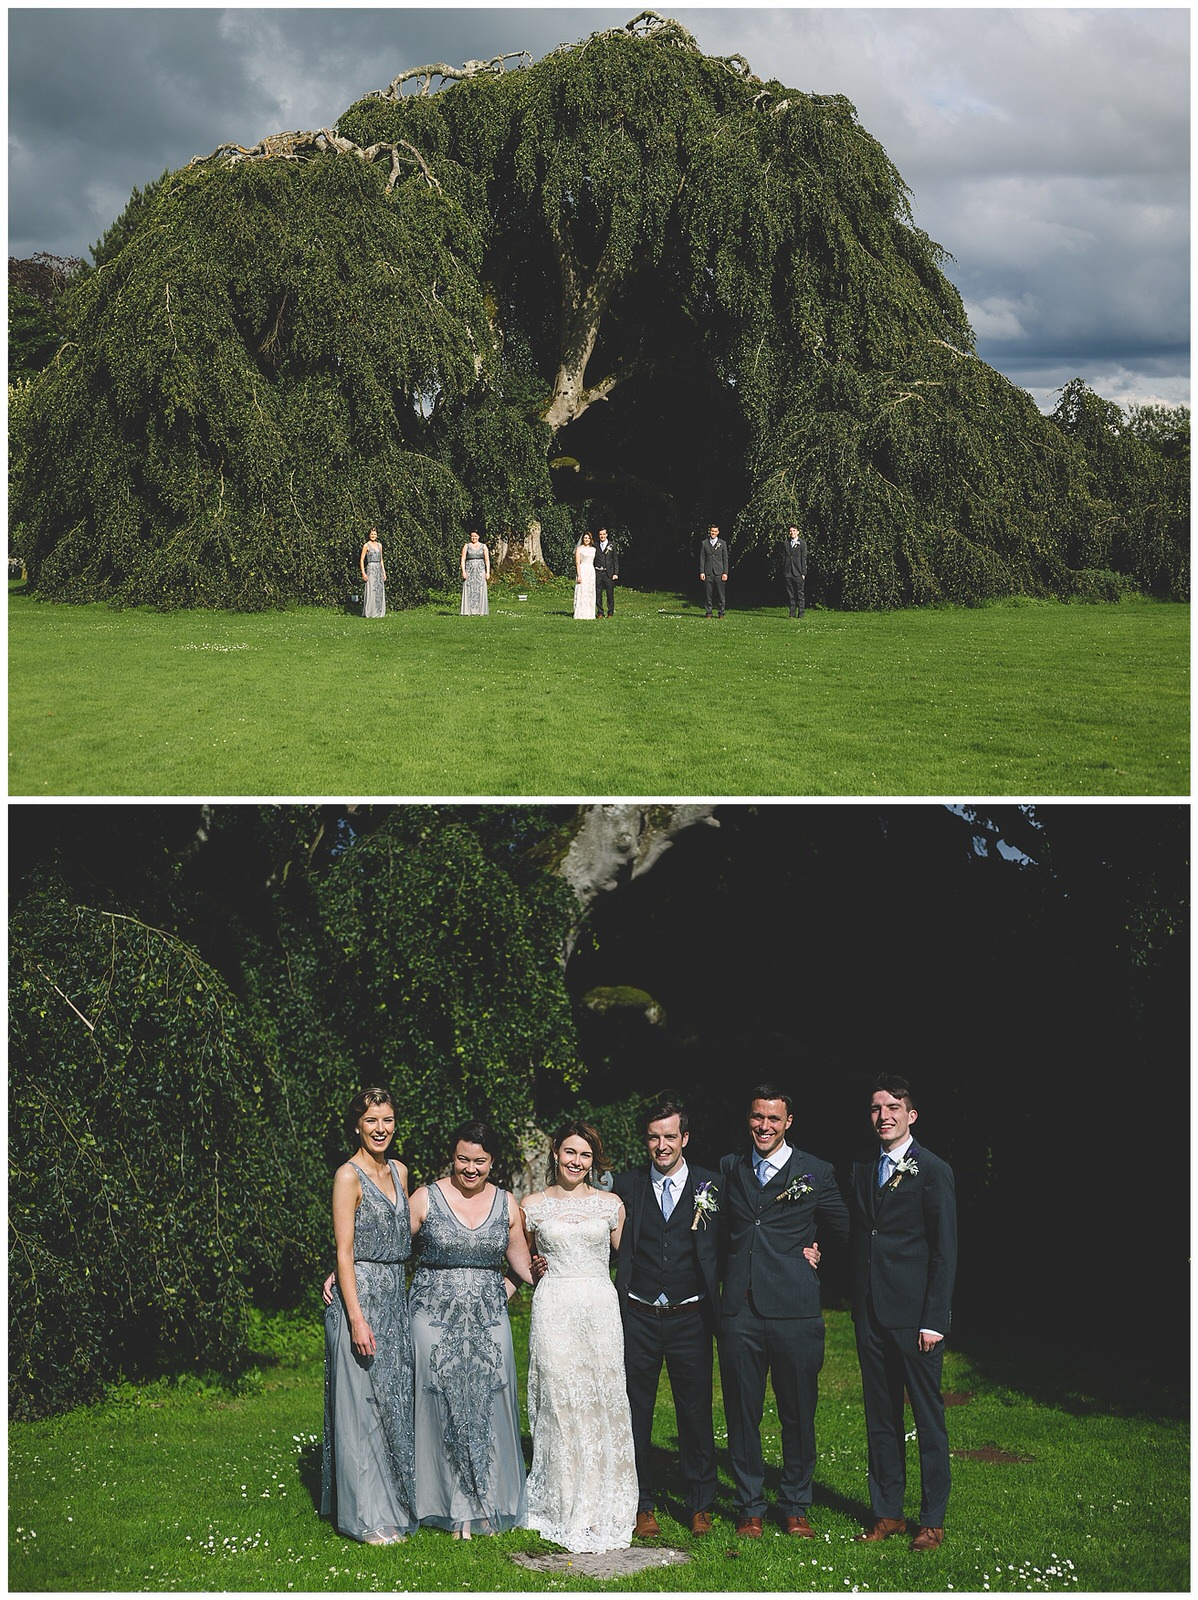 Bridal party portraits under the tree at Bellinter House